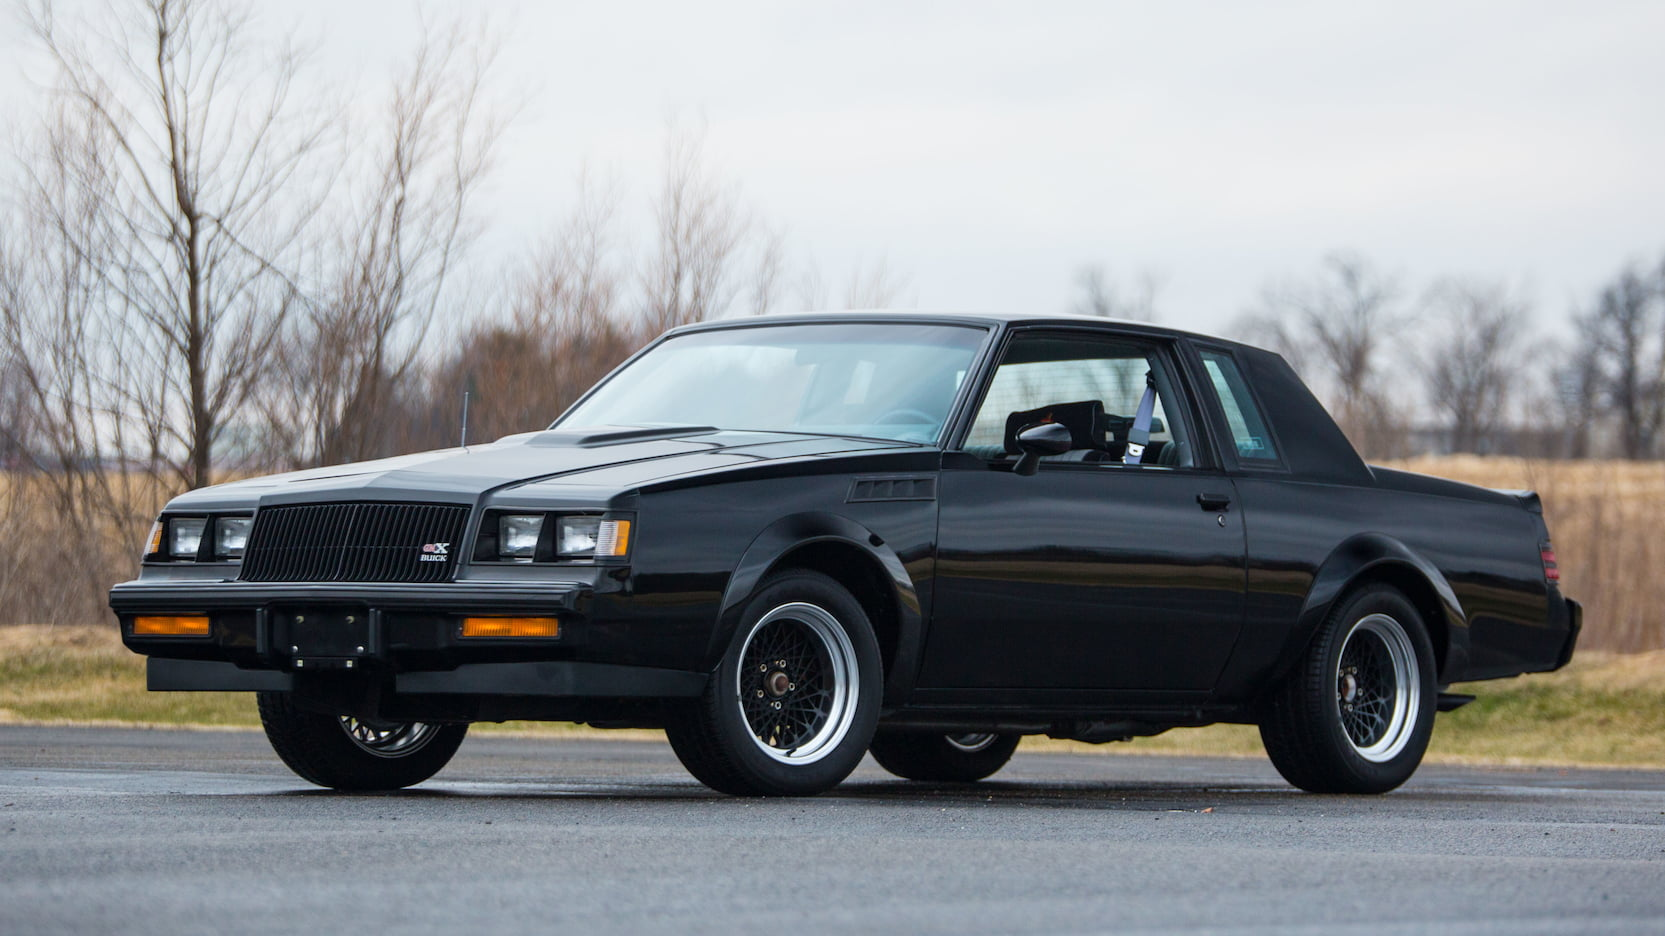 1987 Buick GNX front 3/4